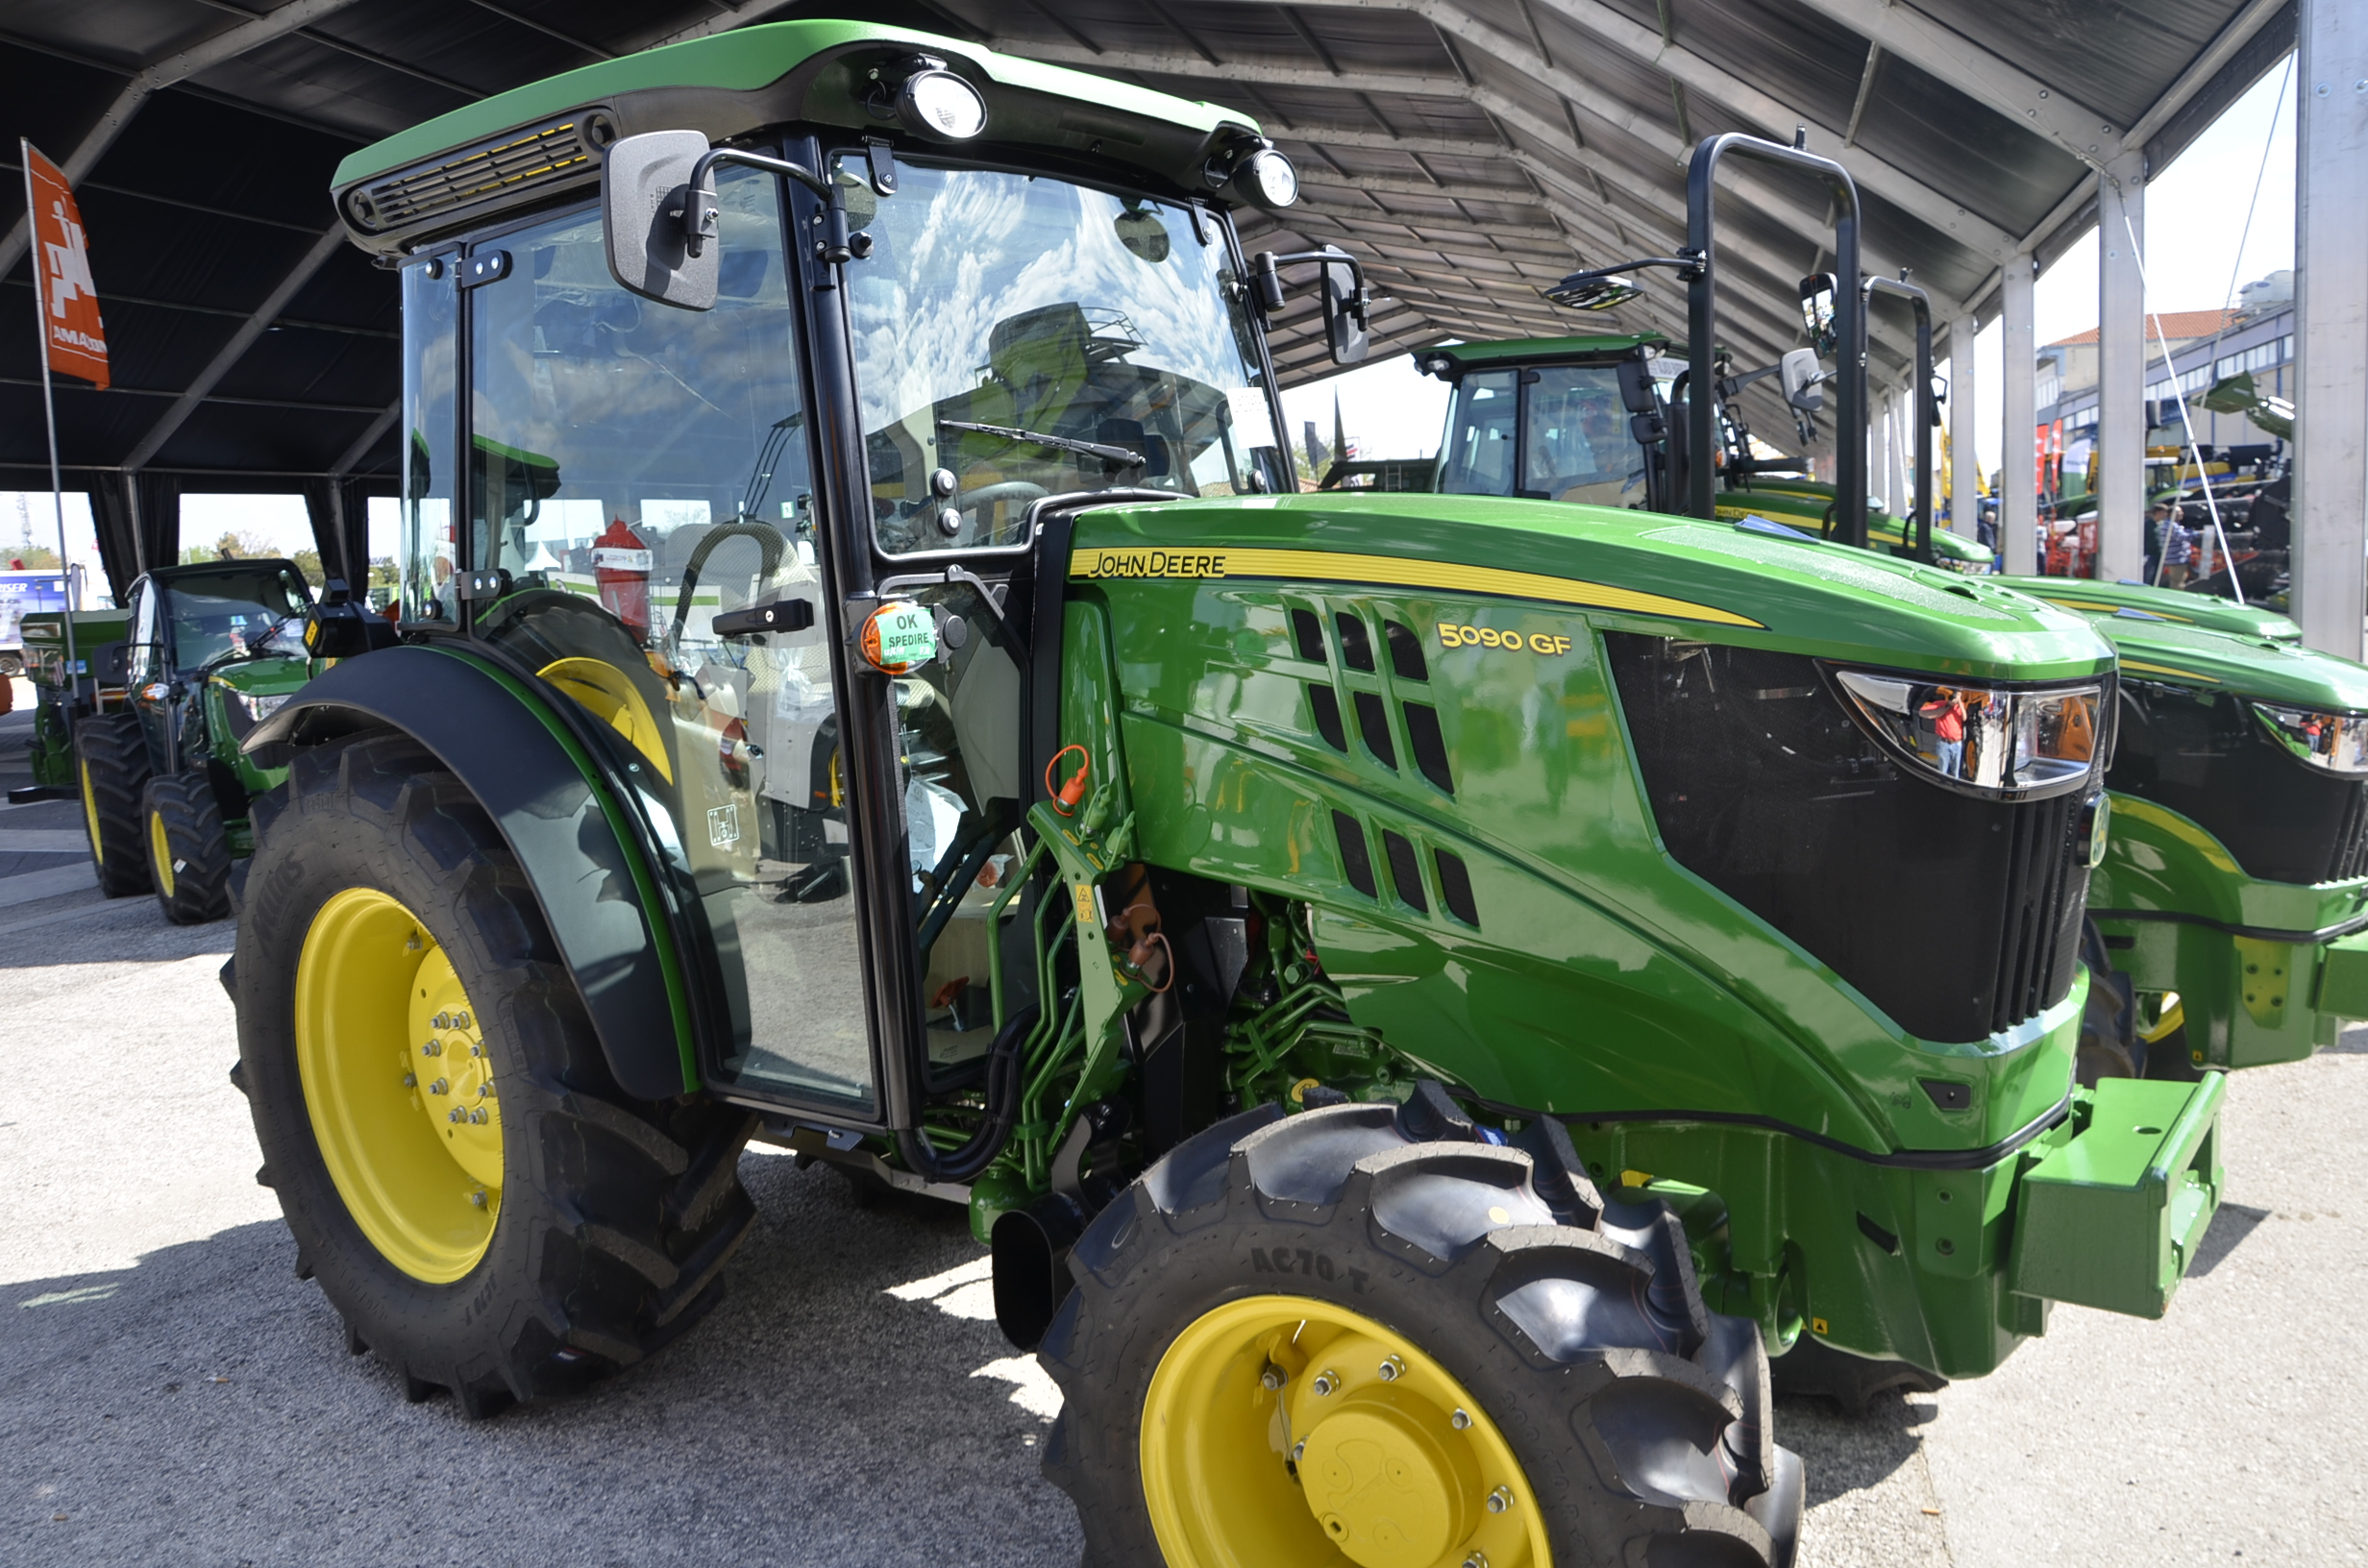 JohnDeere5090GF-50